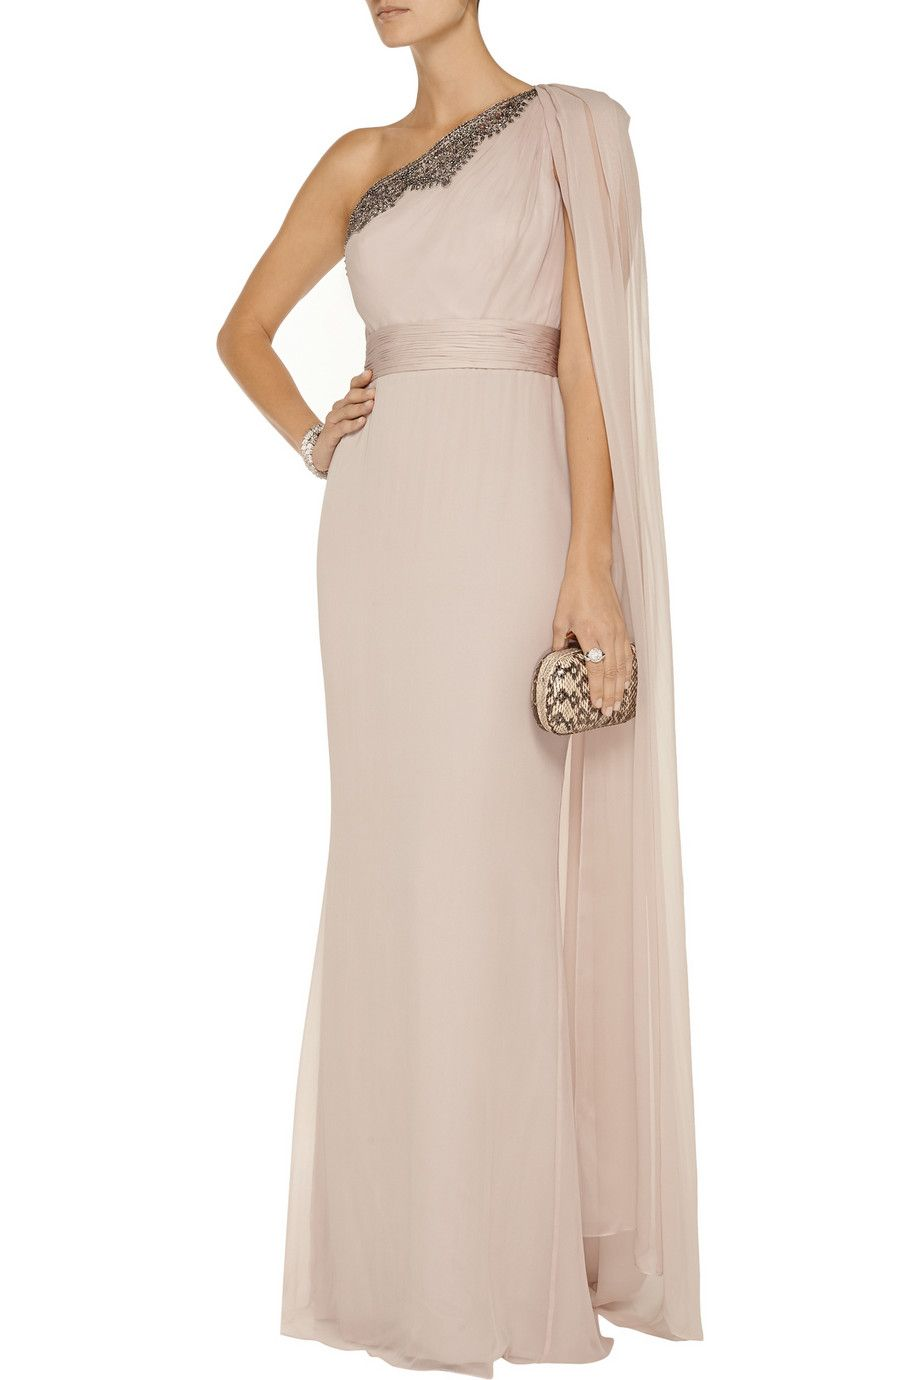 Notte by MarchesaEmbellished washed-silk gown